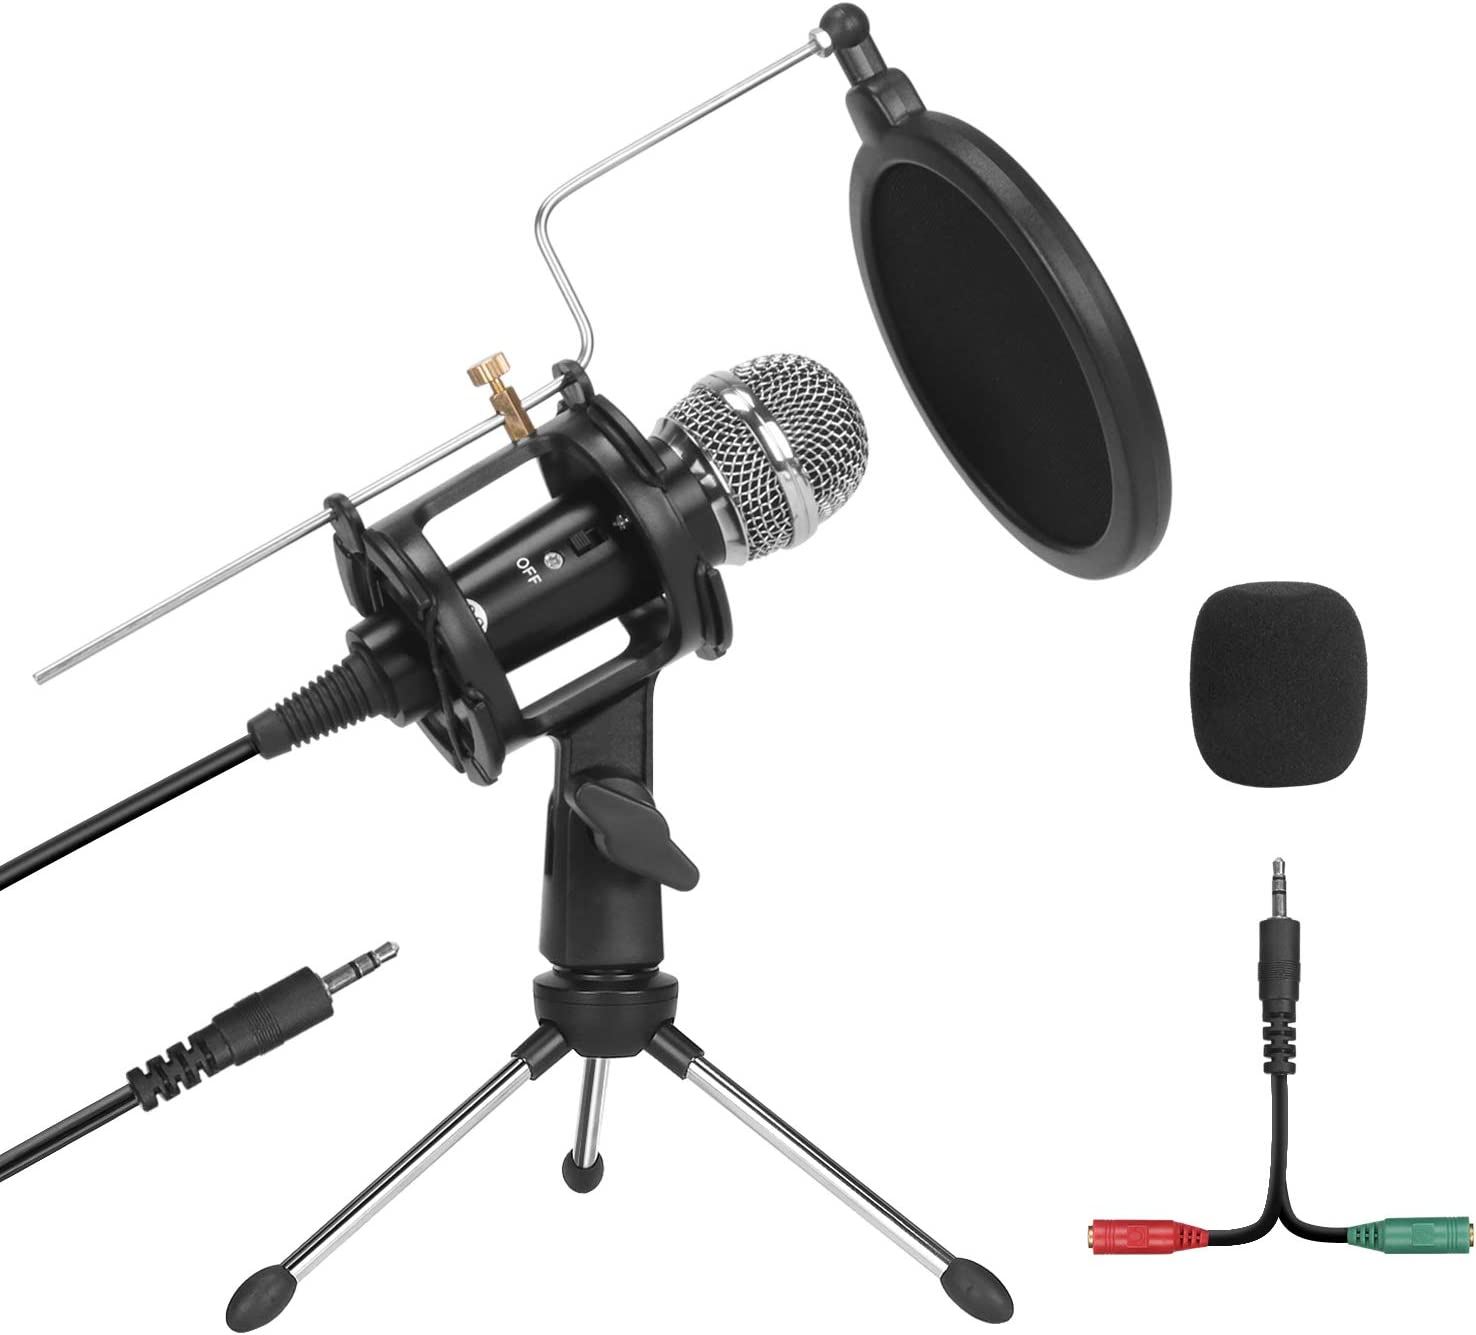 PEMOTech Studio Recording Microphone,Condenser Plug and Play PC Microphone for Podcast Recording,3.5mm Microphone with Pop Filter for Broadcast Desktop Laptop Sing Phone Skype YouTube